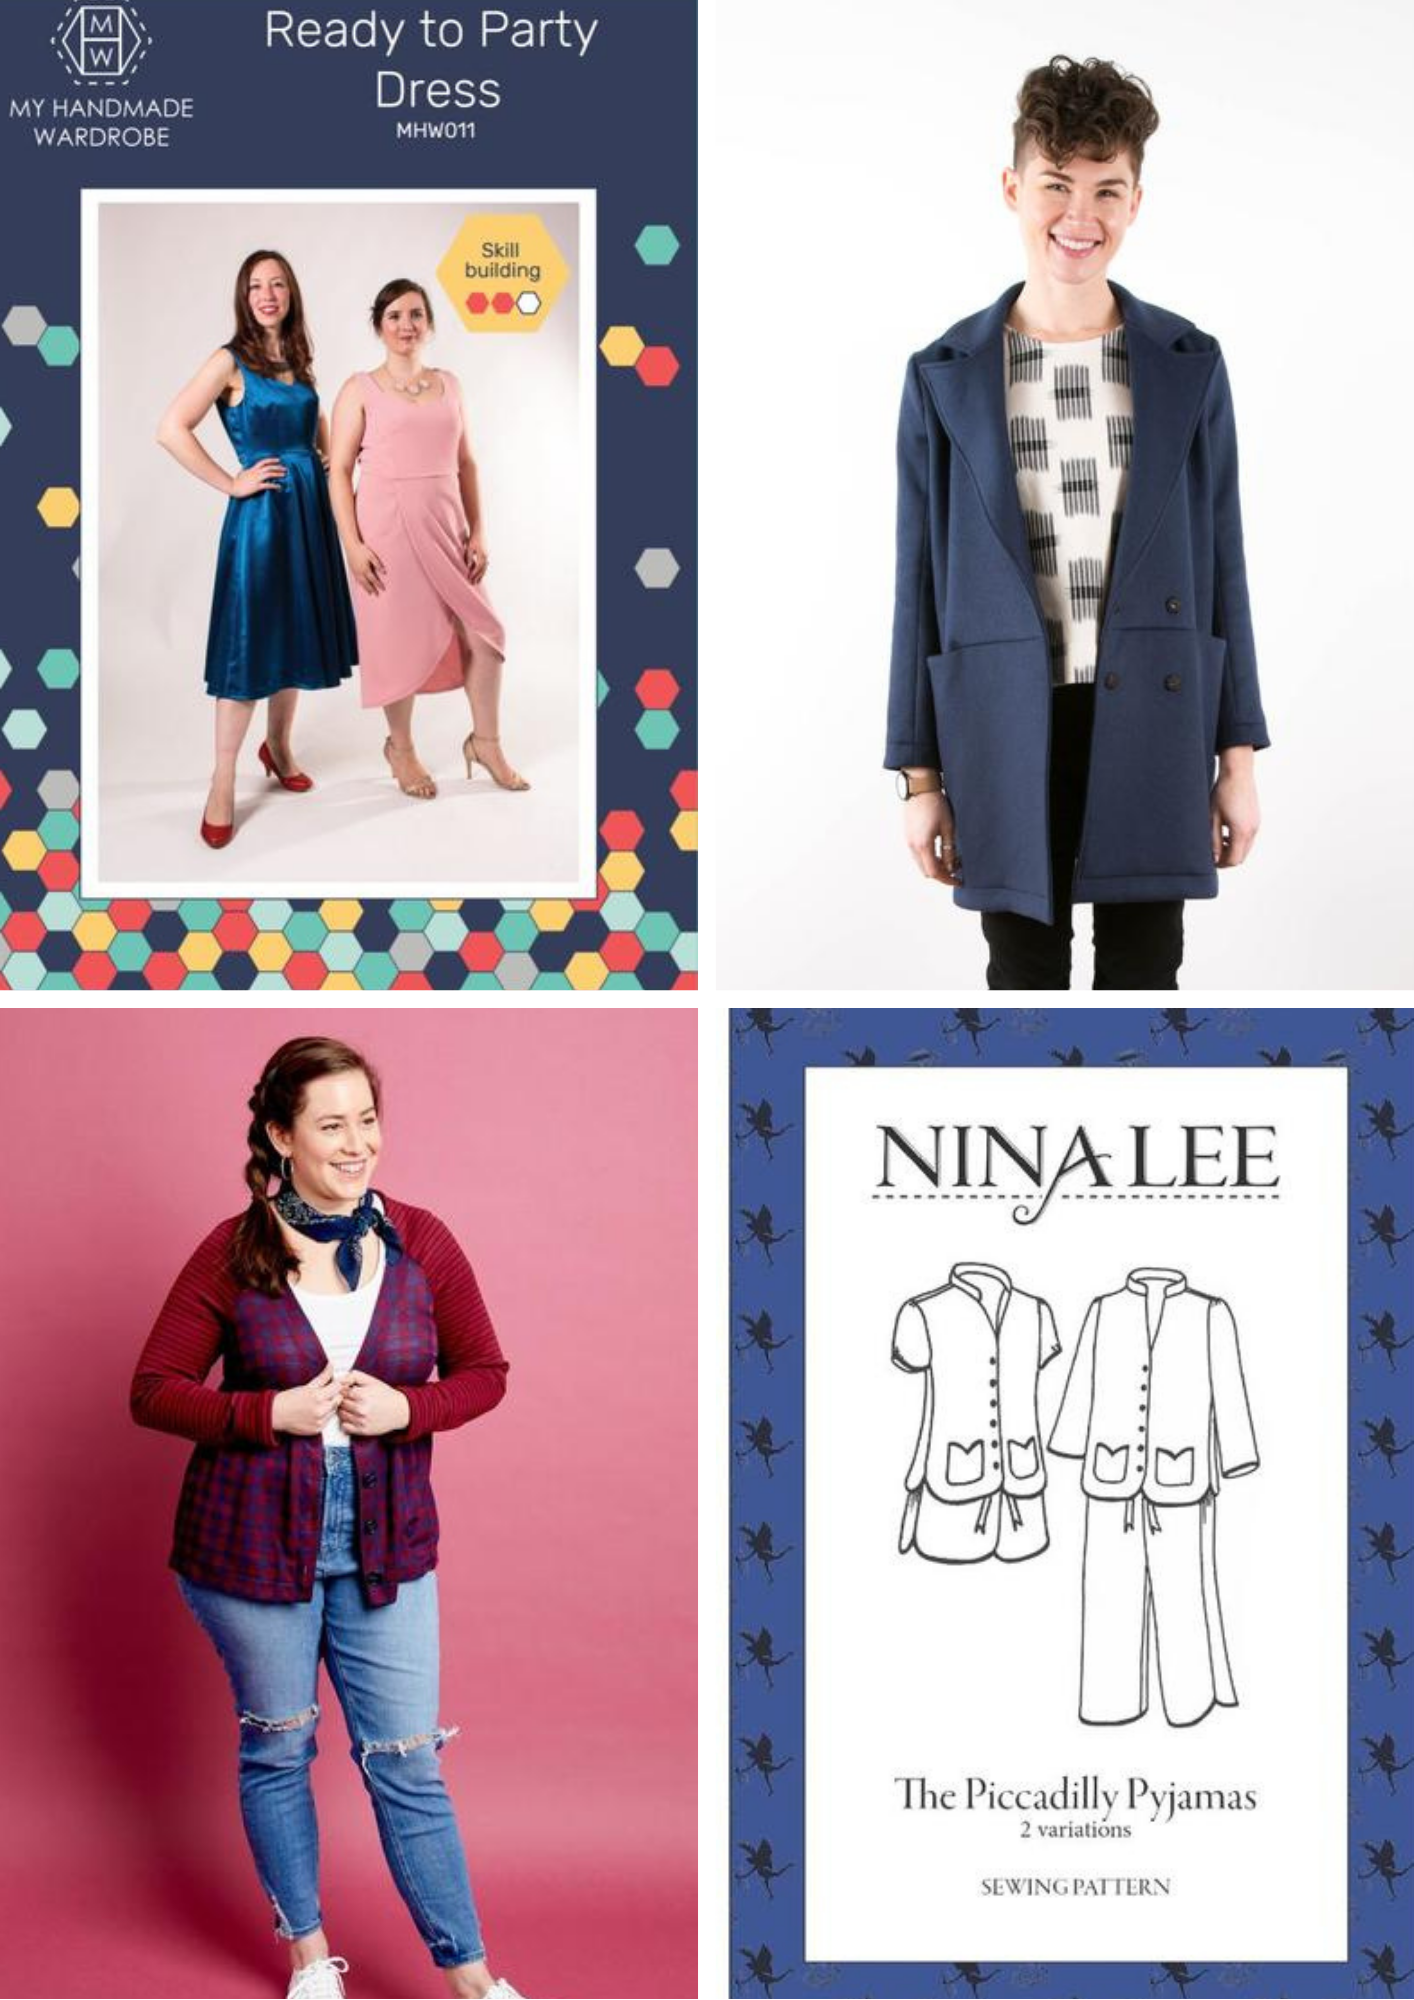 Sewing patterns gift guide